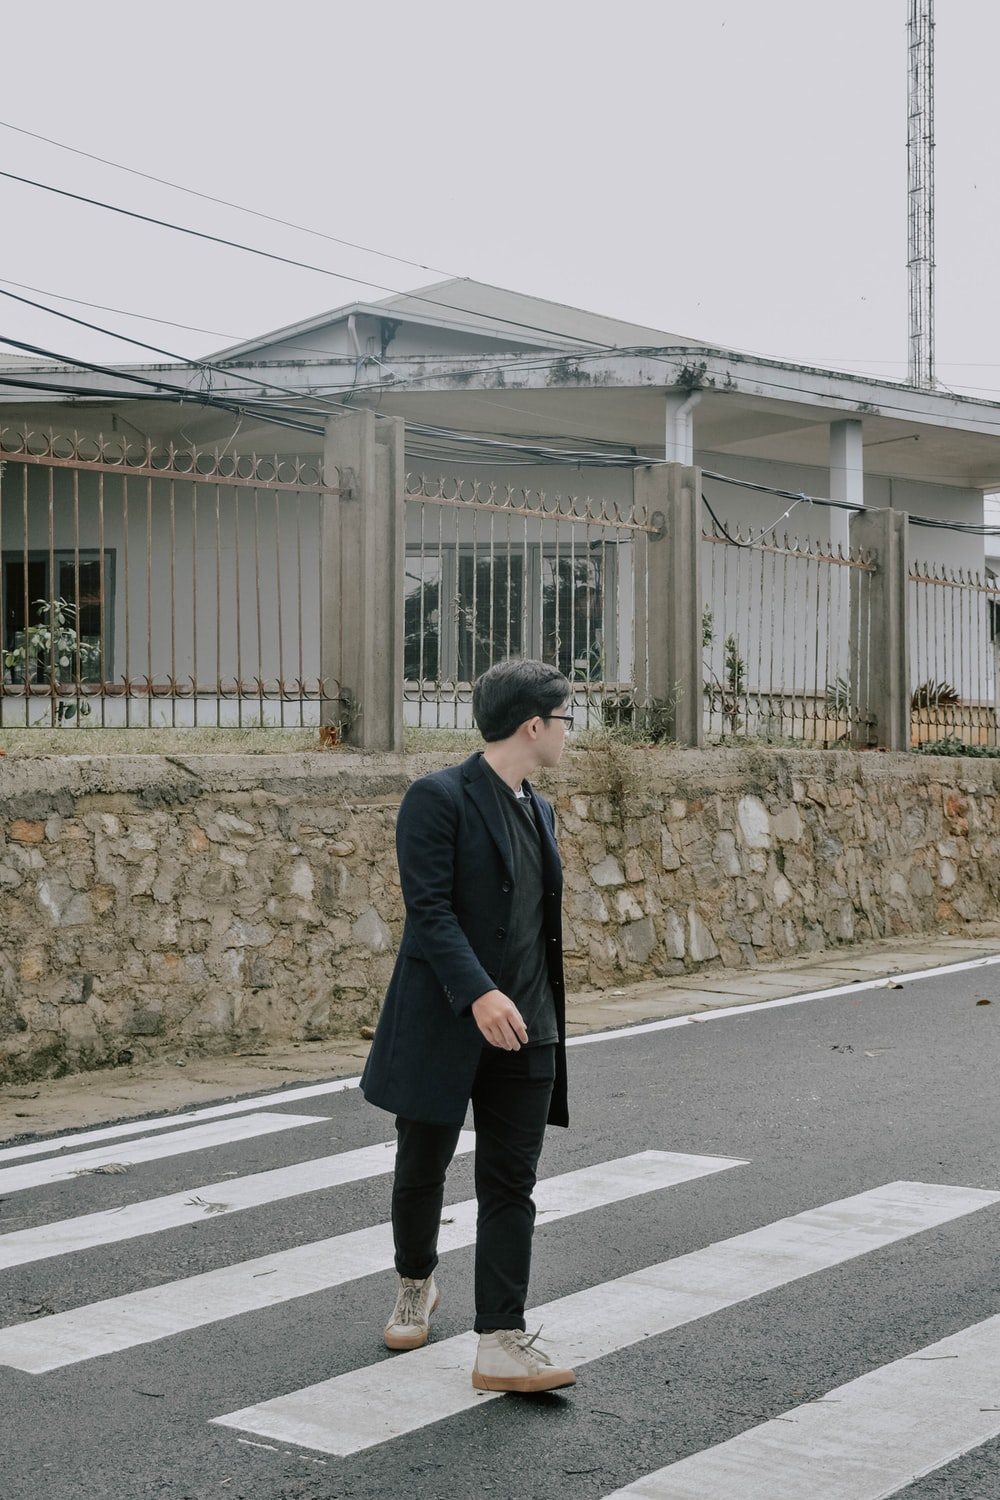 man in black coat standing on gray concrete pavement during daytime